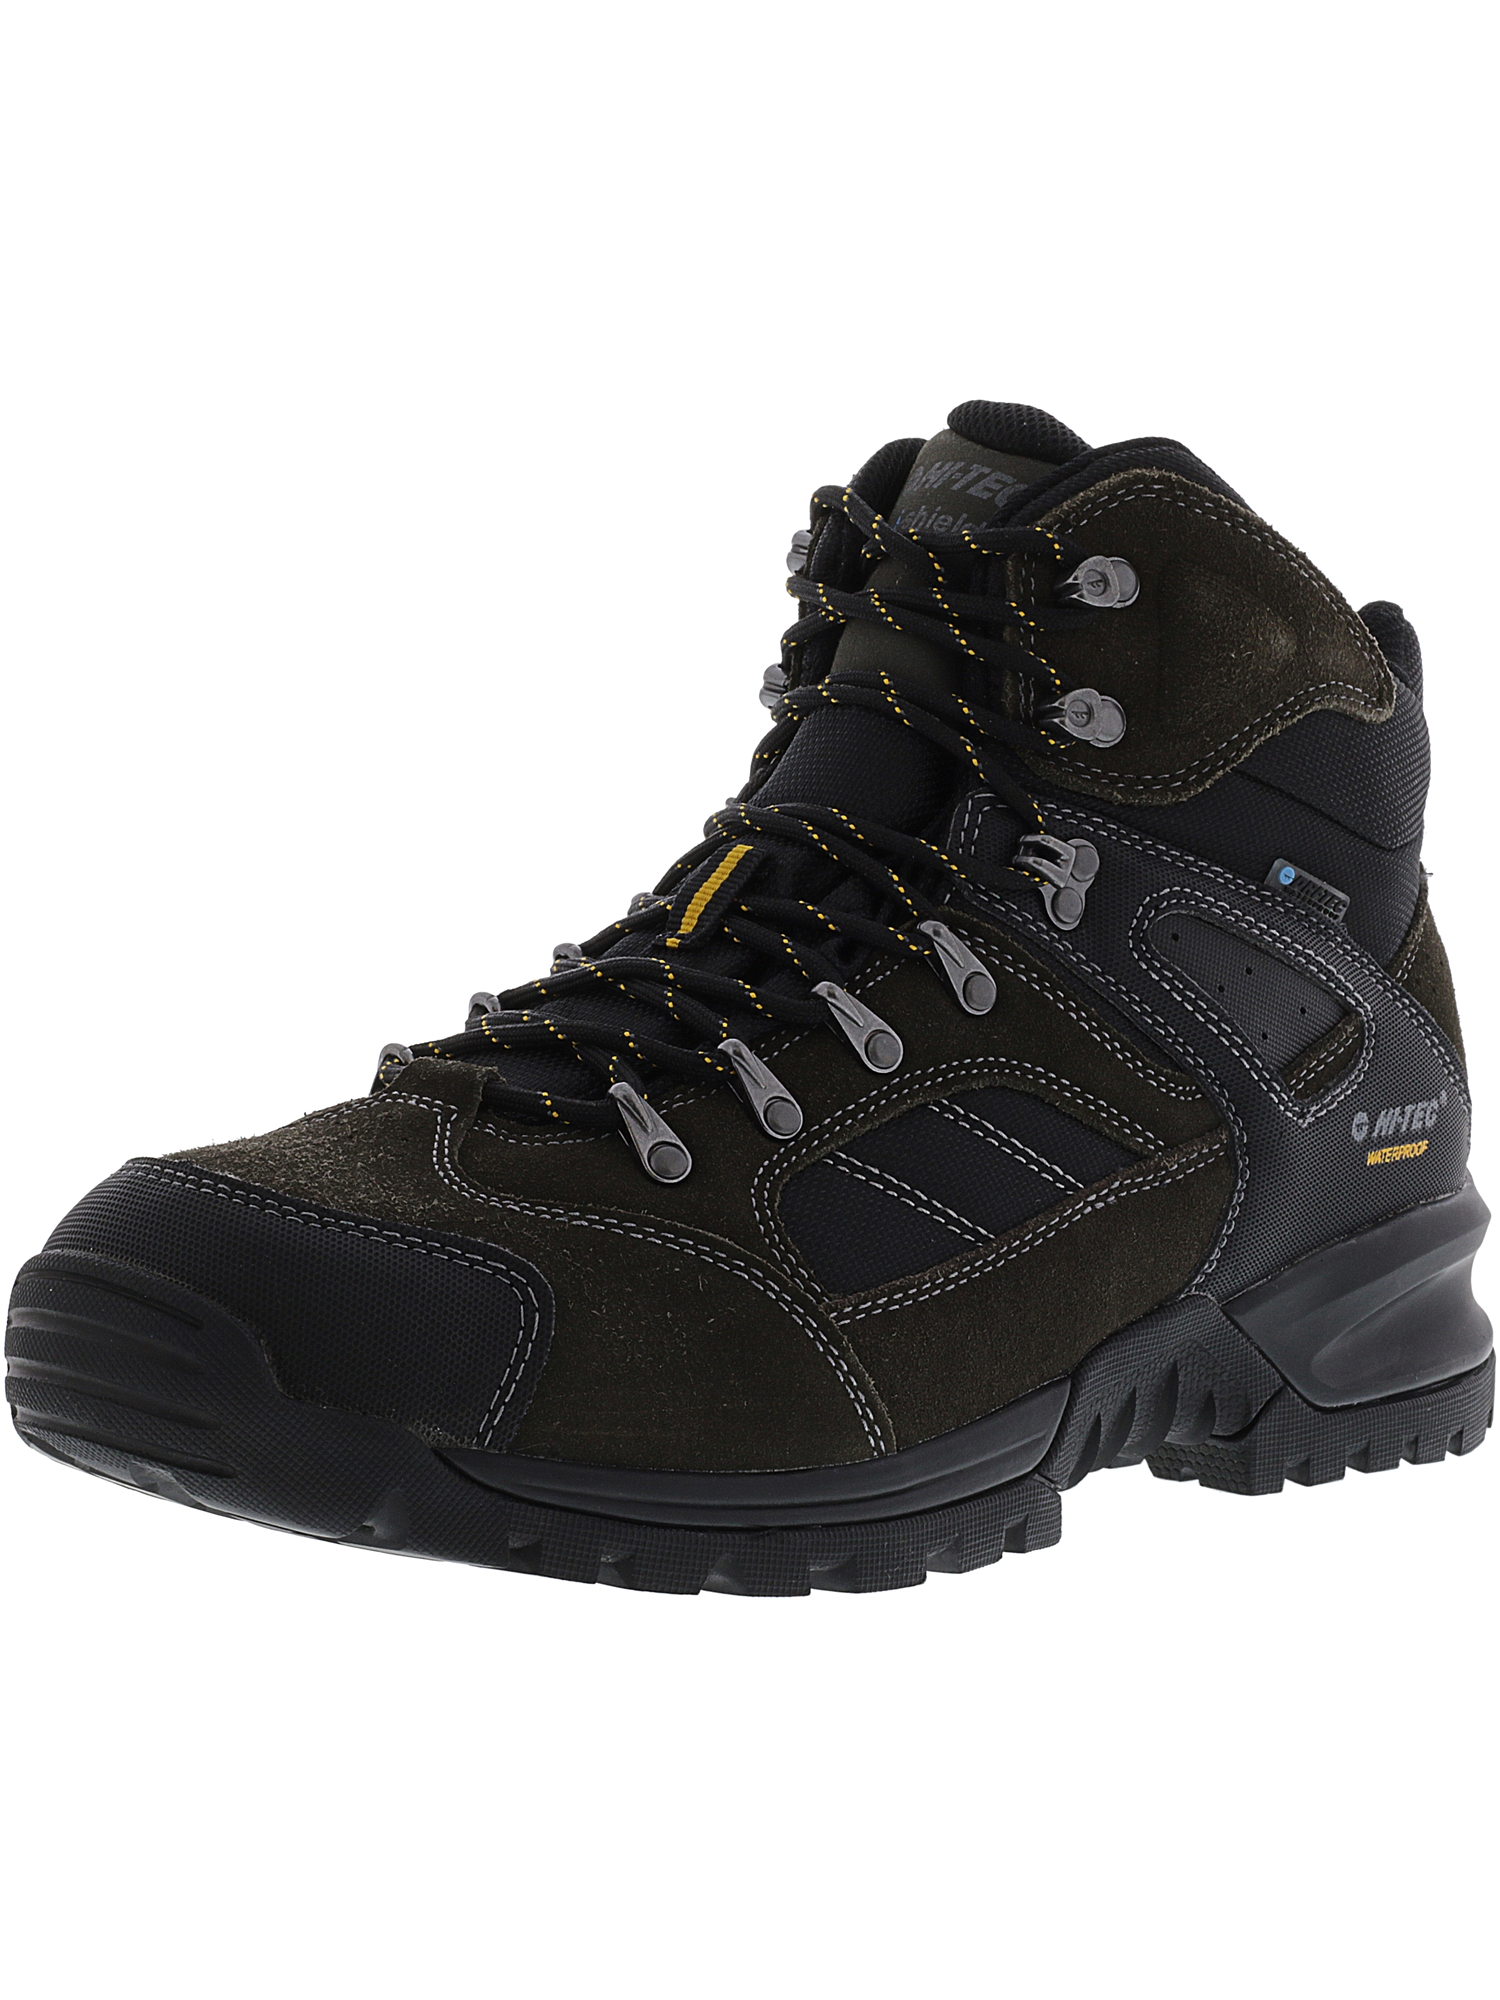 Hi-Tec Men's Mount Diablo Hiking Boot by Hi-Tec